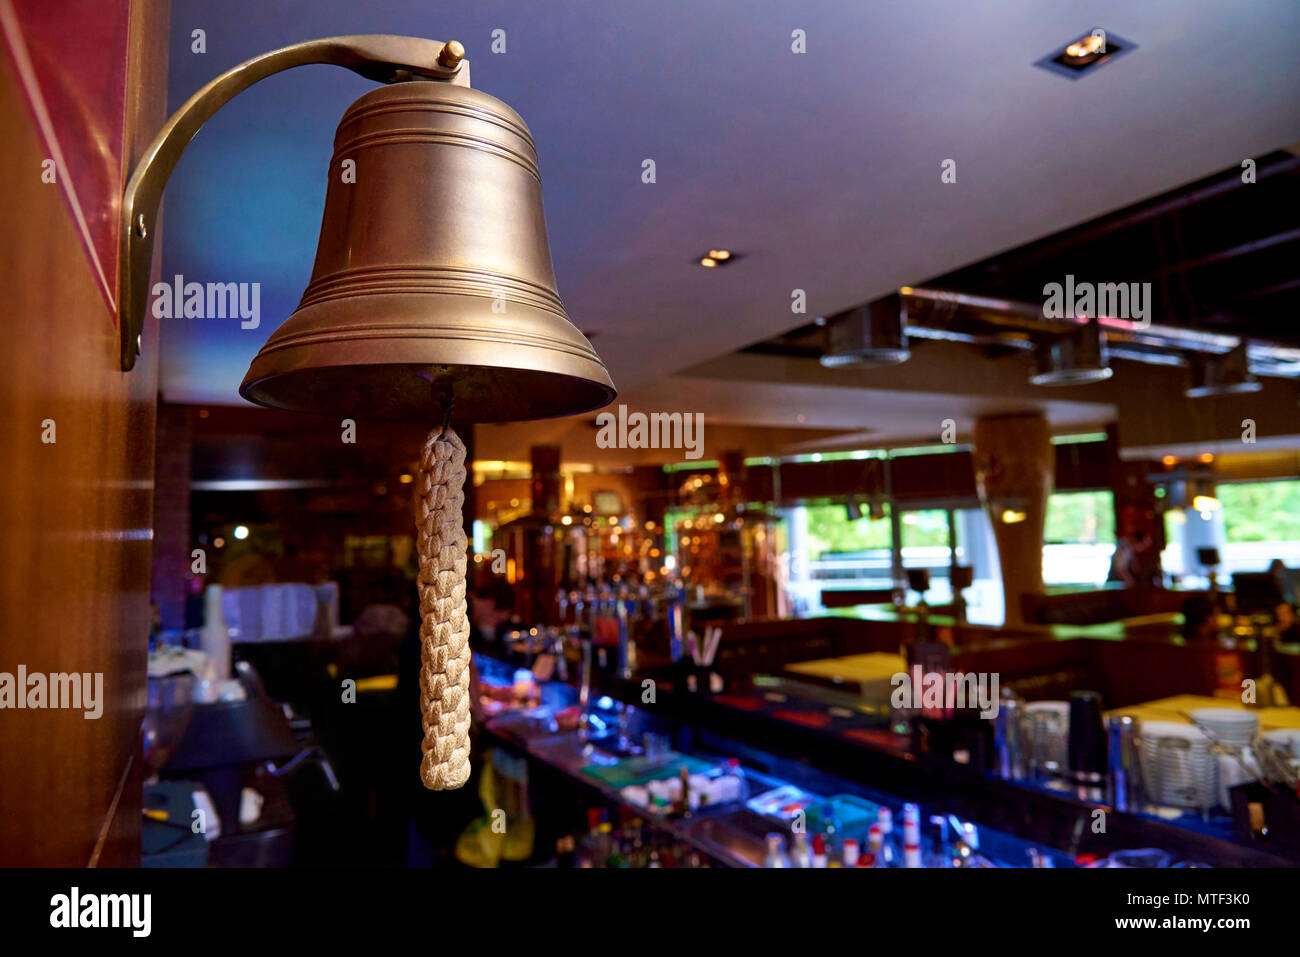 A bell with a woven rope on the background of the bar. - Stock Image